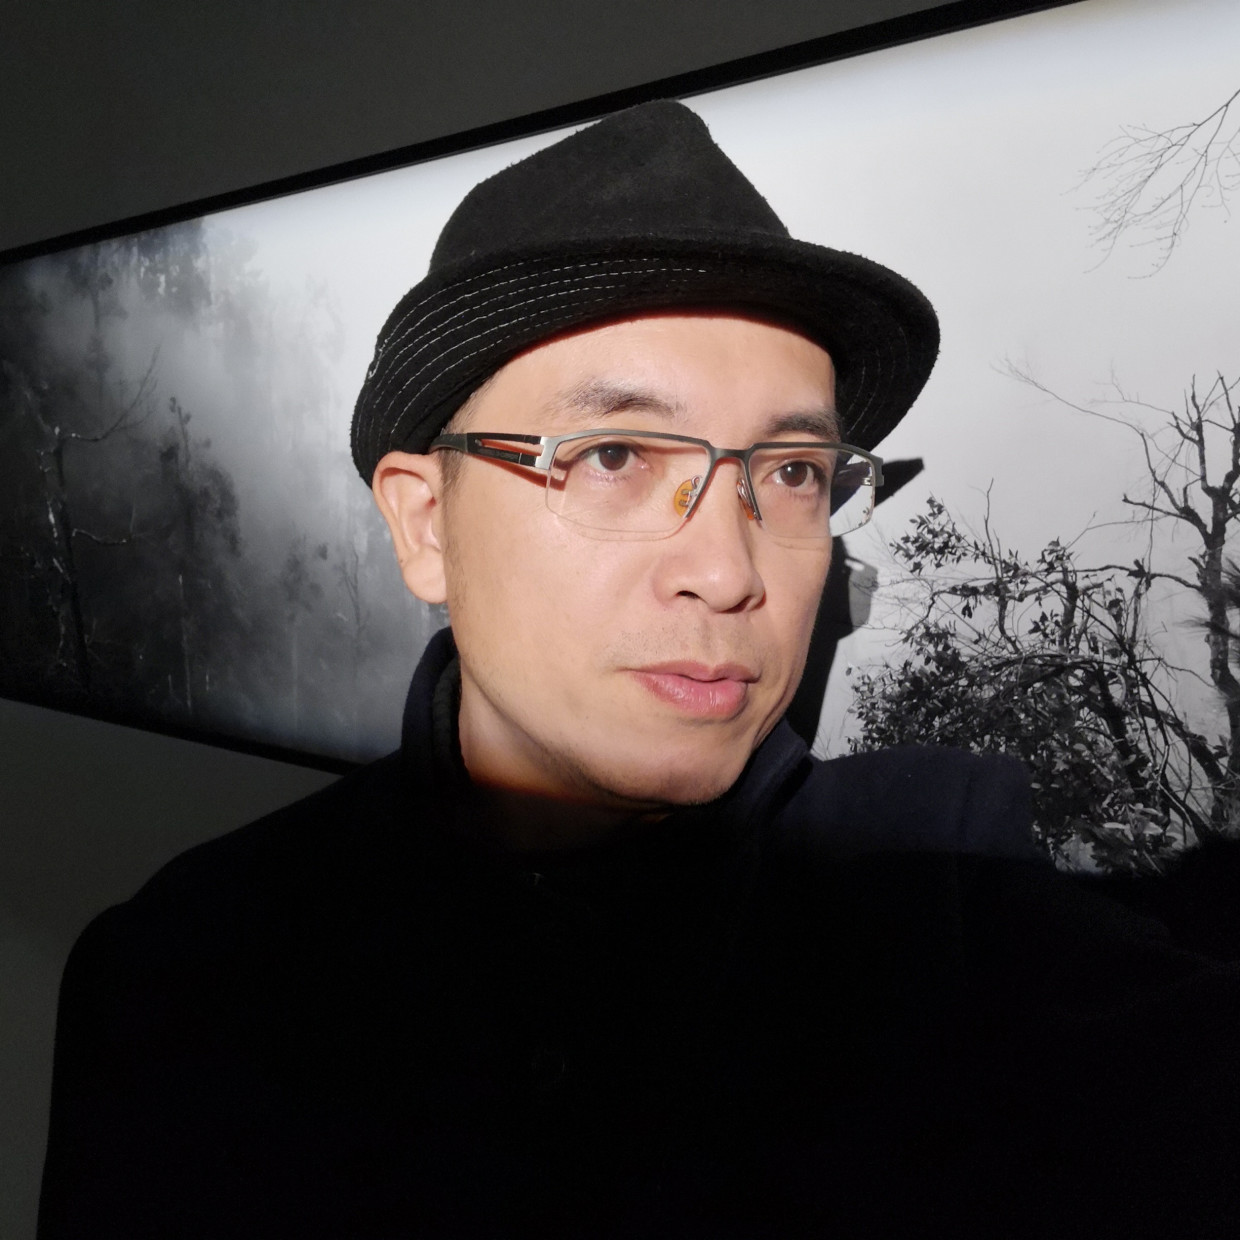 Artist Zeng Han Born in Guangdong in 1974. Zeng Han graduated from the International Journalism and Communications Department of Jinan...